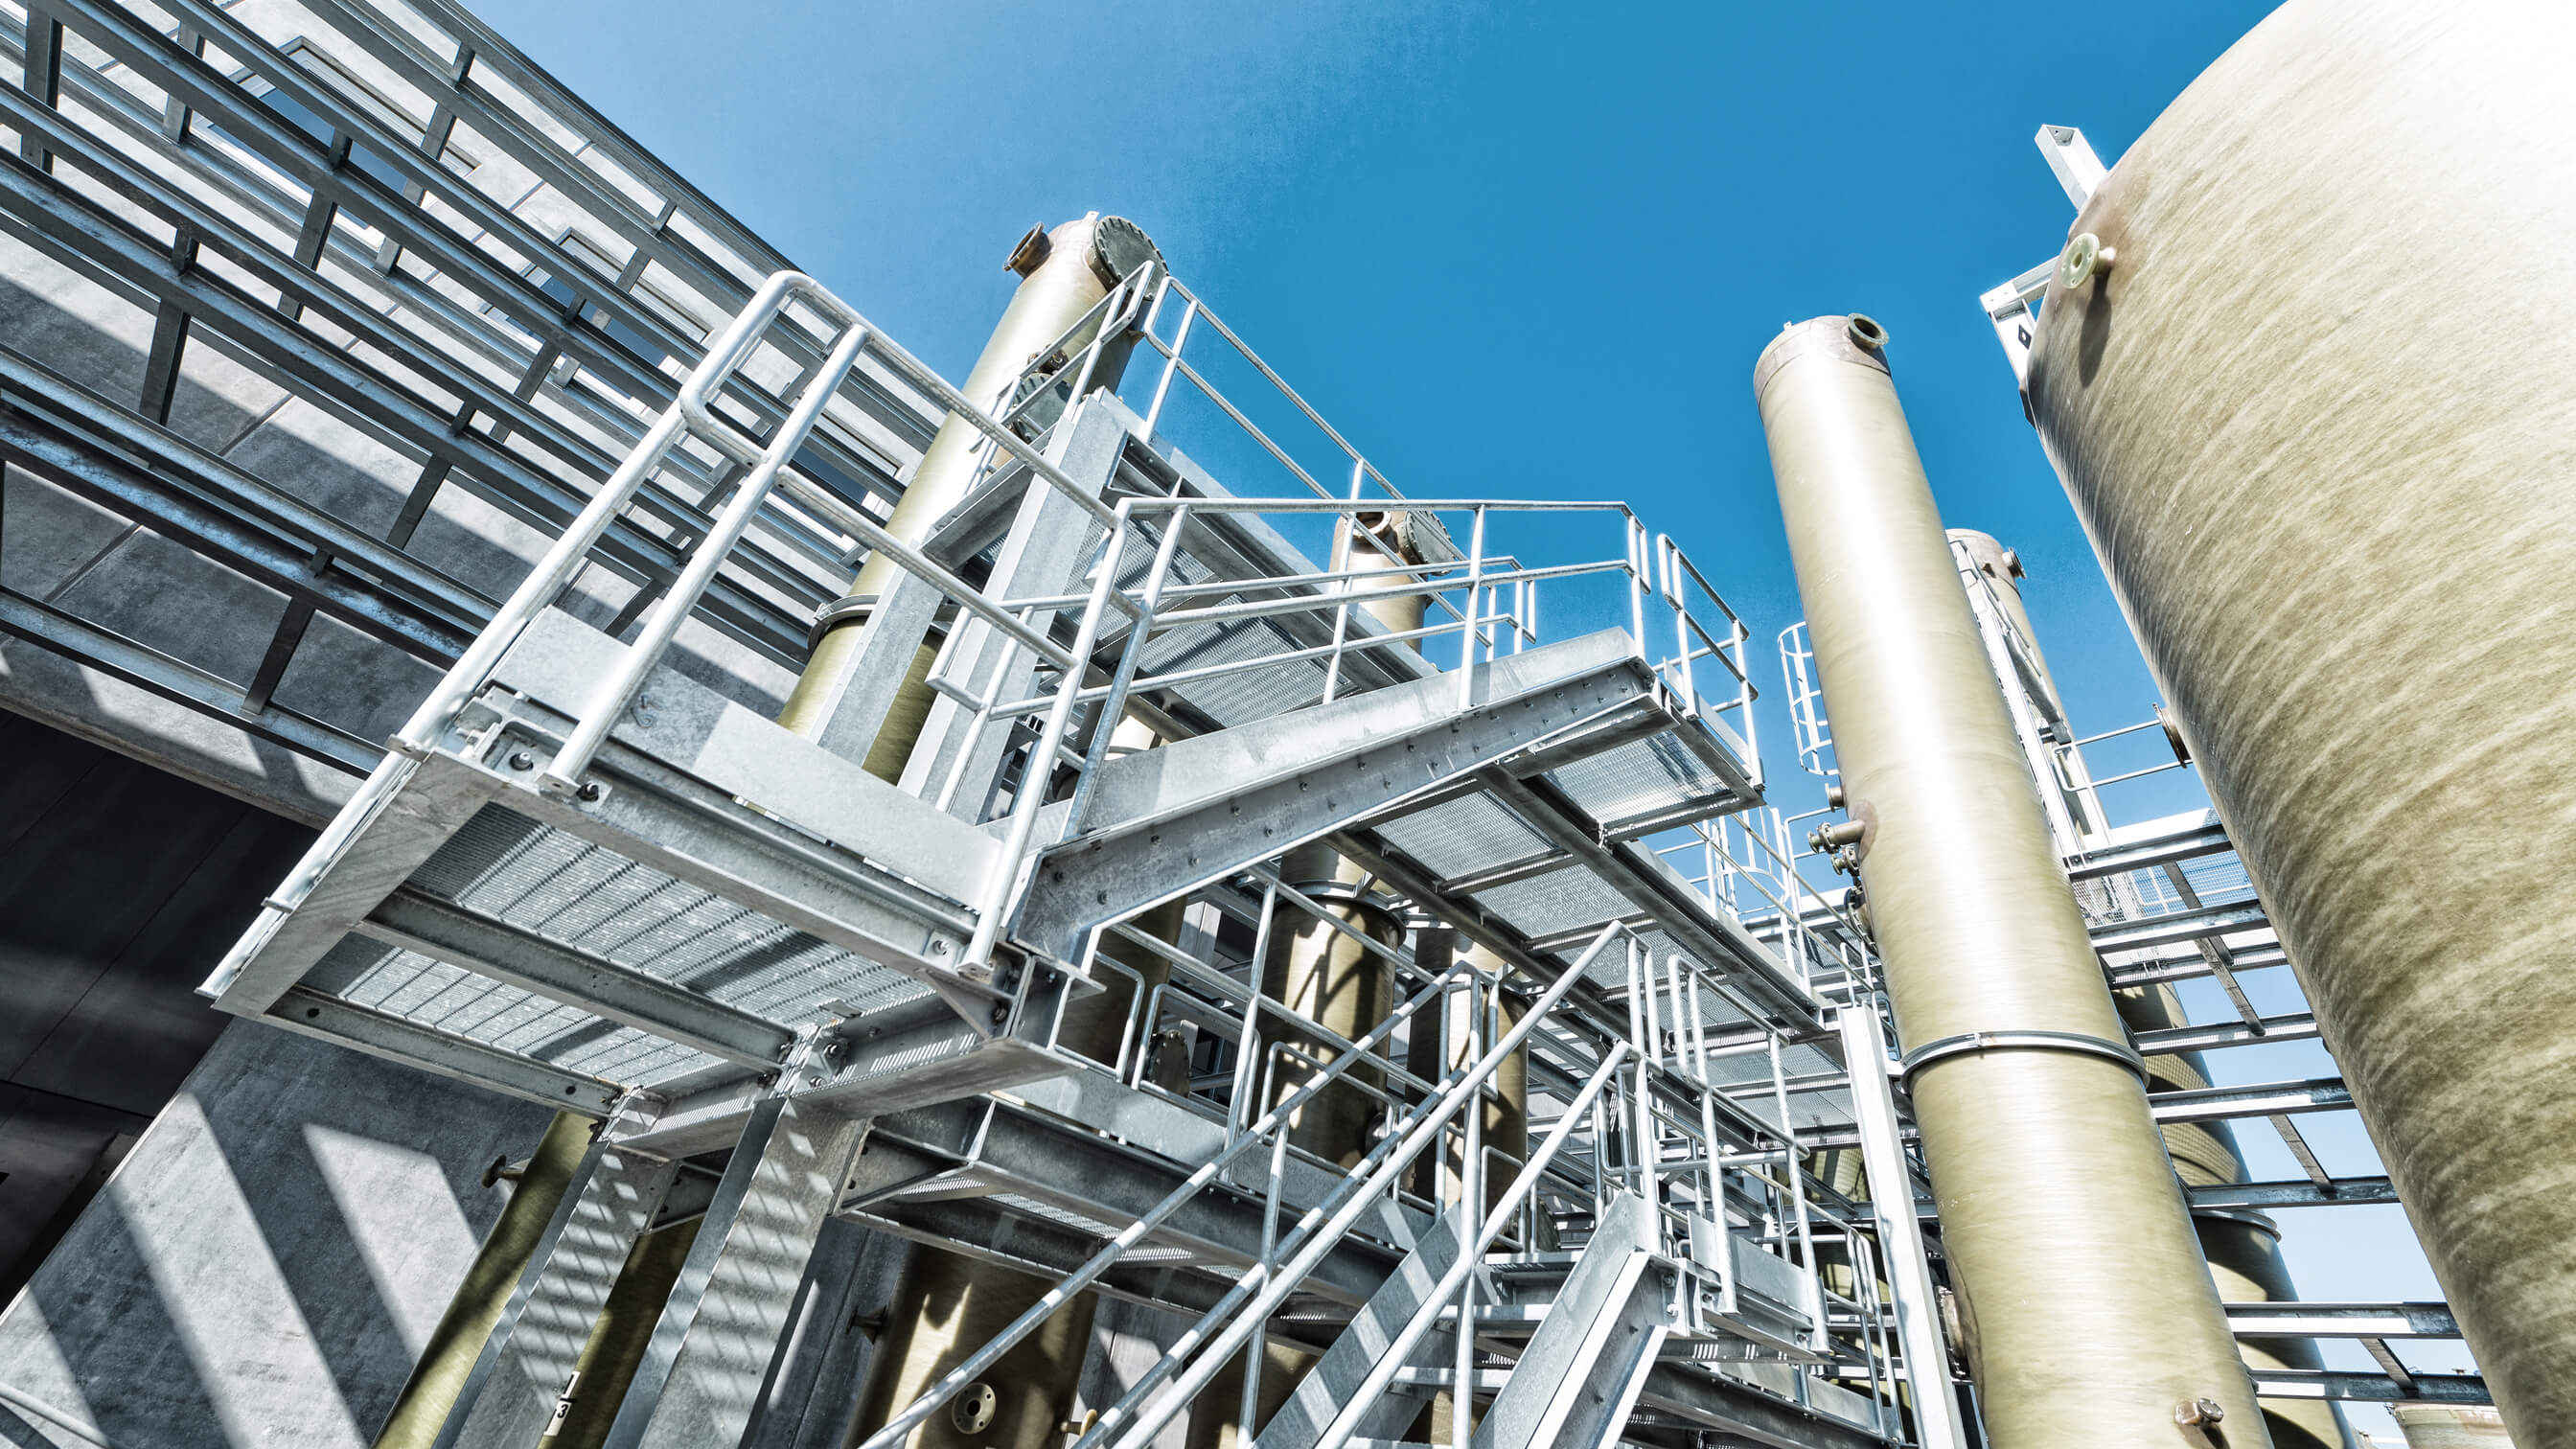 Steady temperature at chemical processing plant